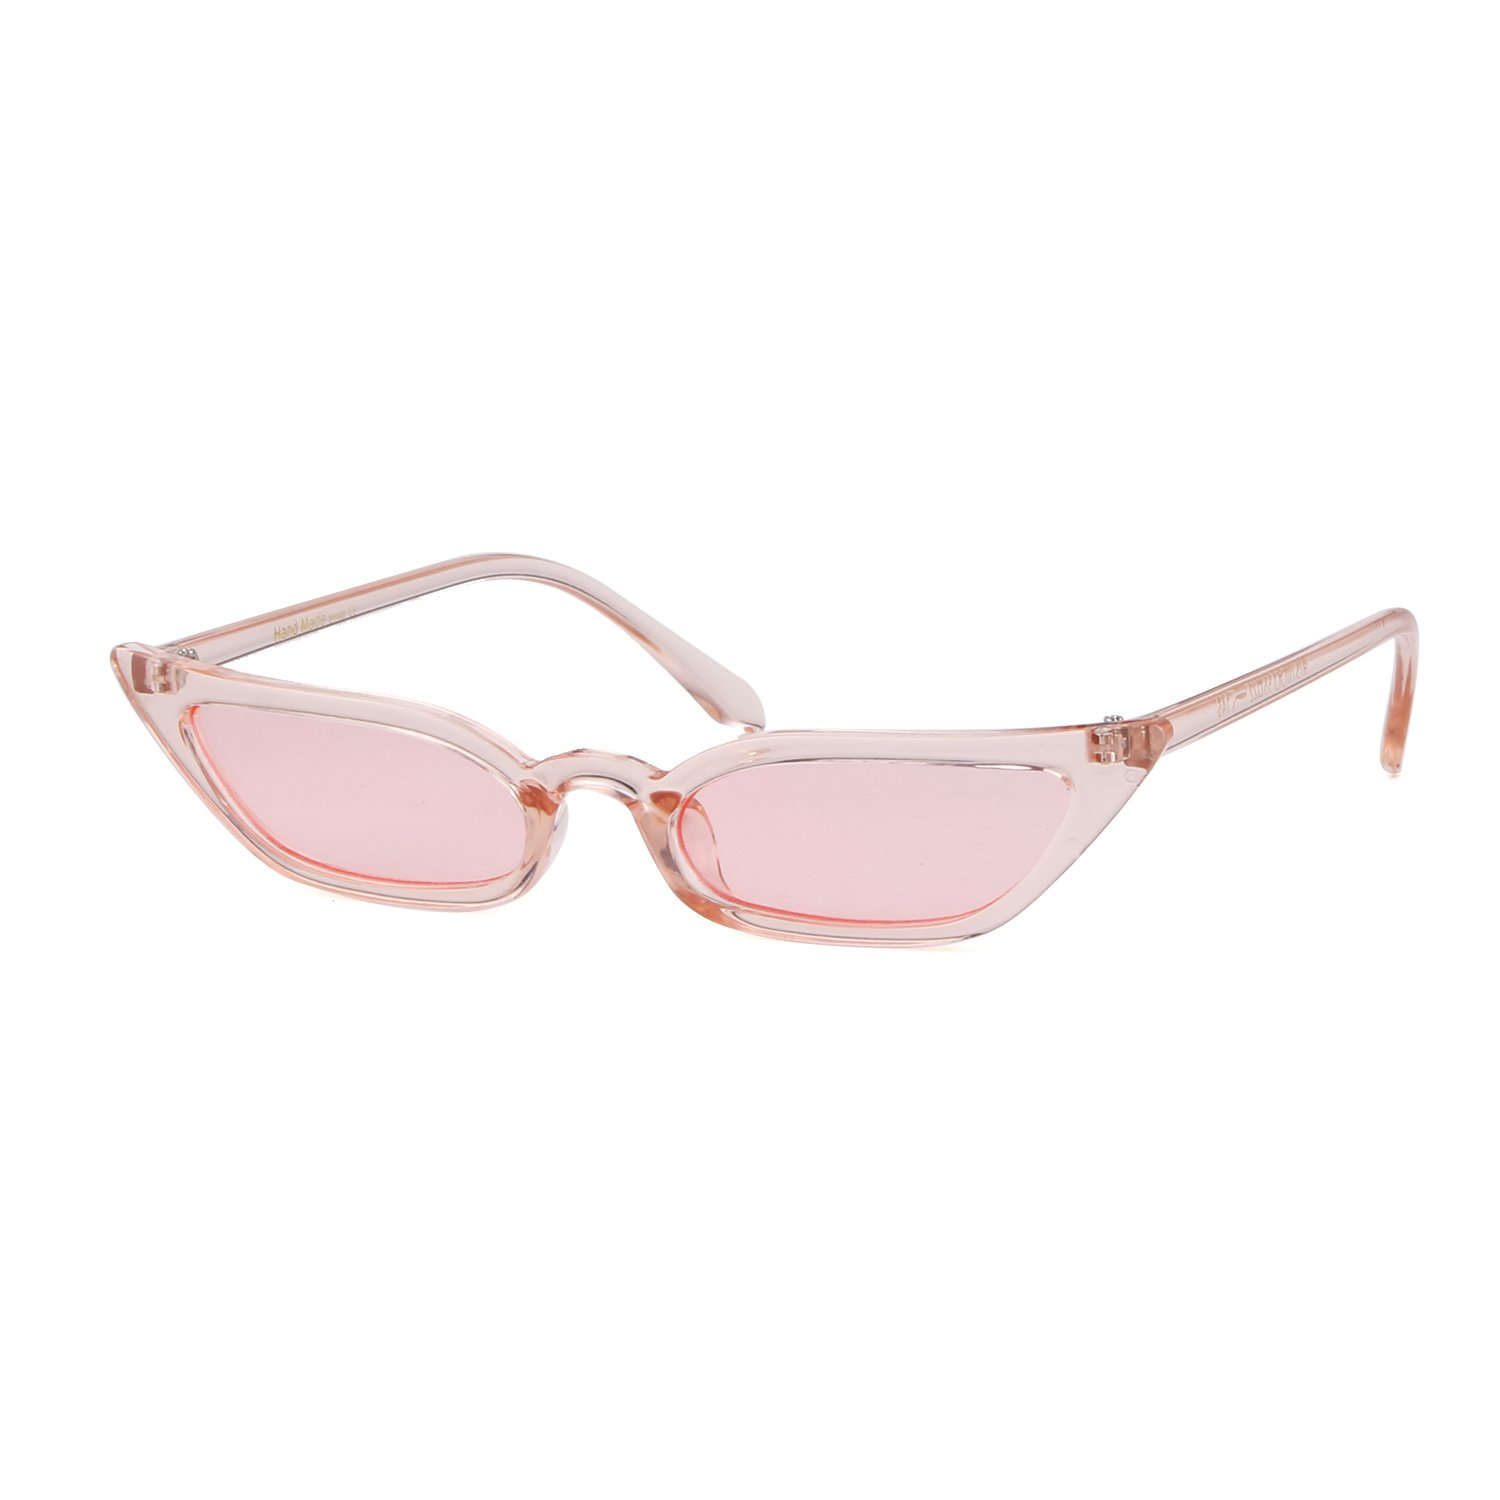 Vintage Sunglasses Women Cat Eye Candy lens Valentine's Day gift by ADEWU (Image #2)